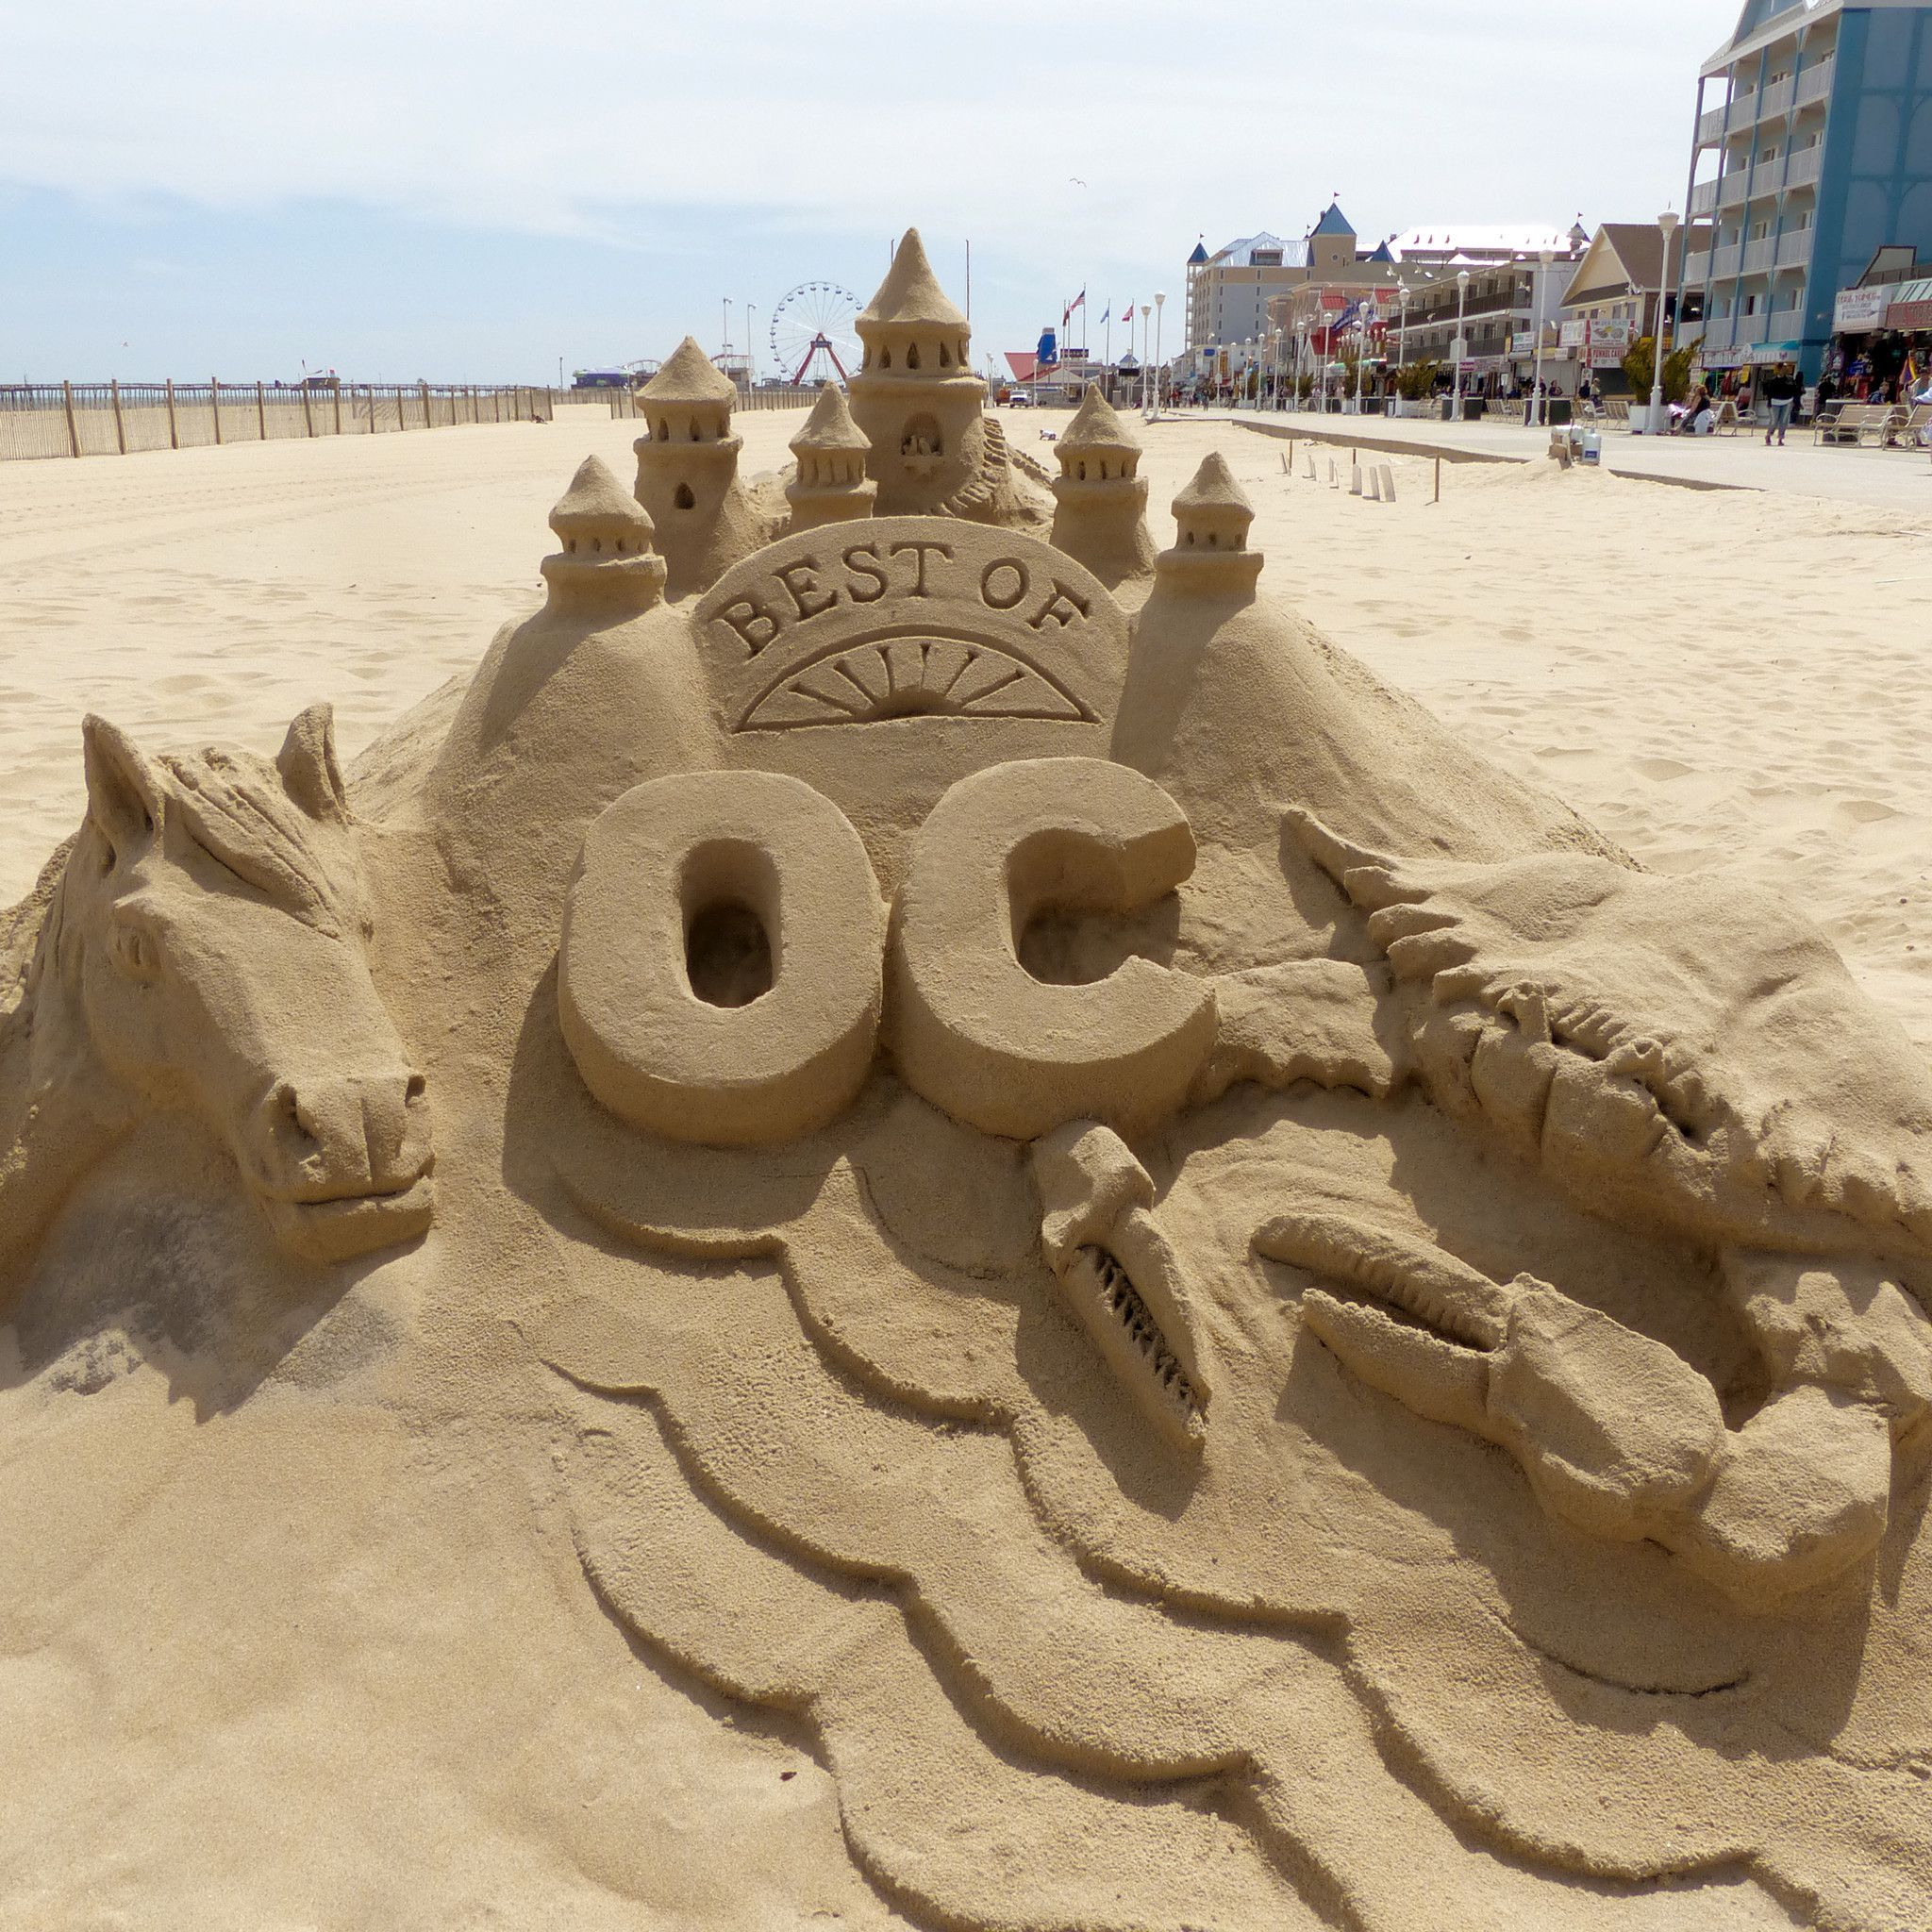 Best Of Ocean City Md 2014 Pictures Baltimore Sun